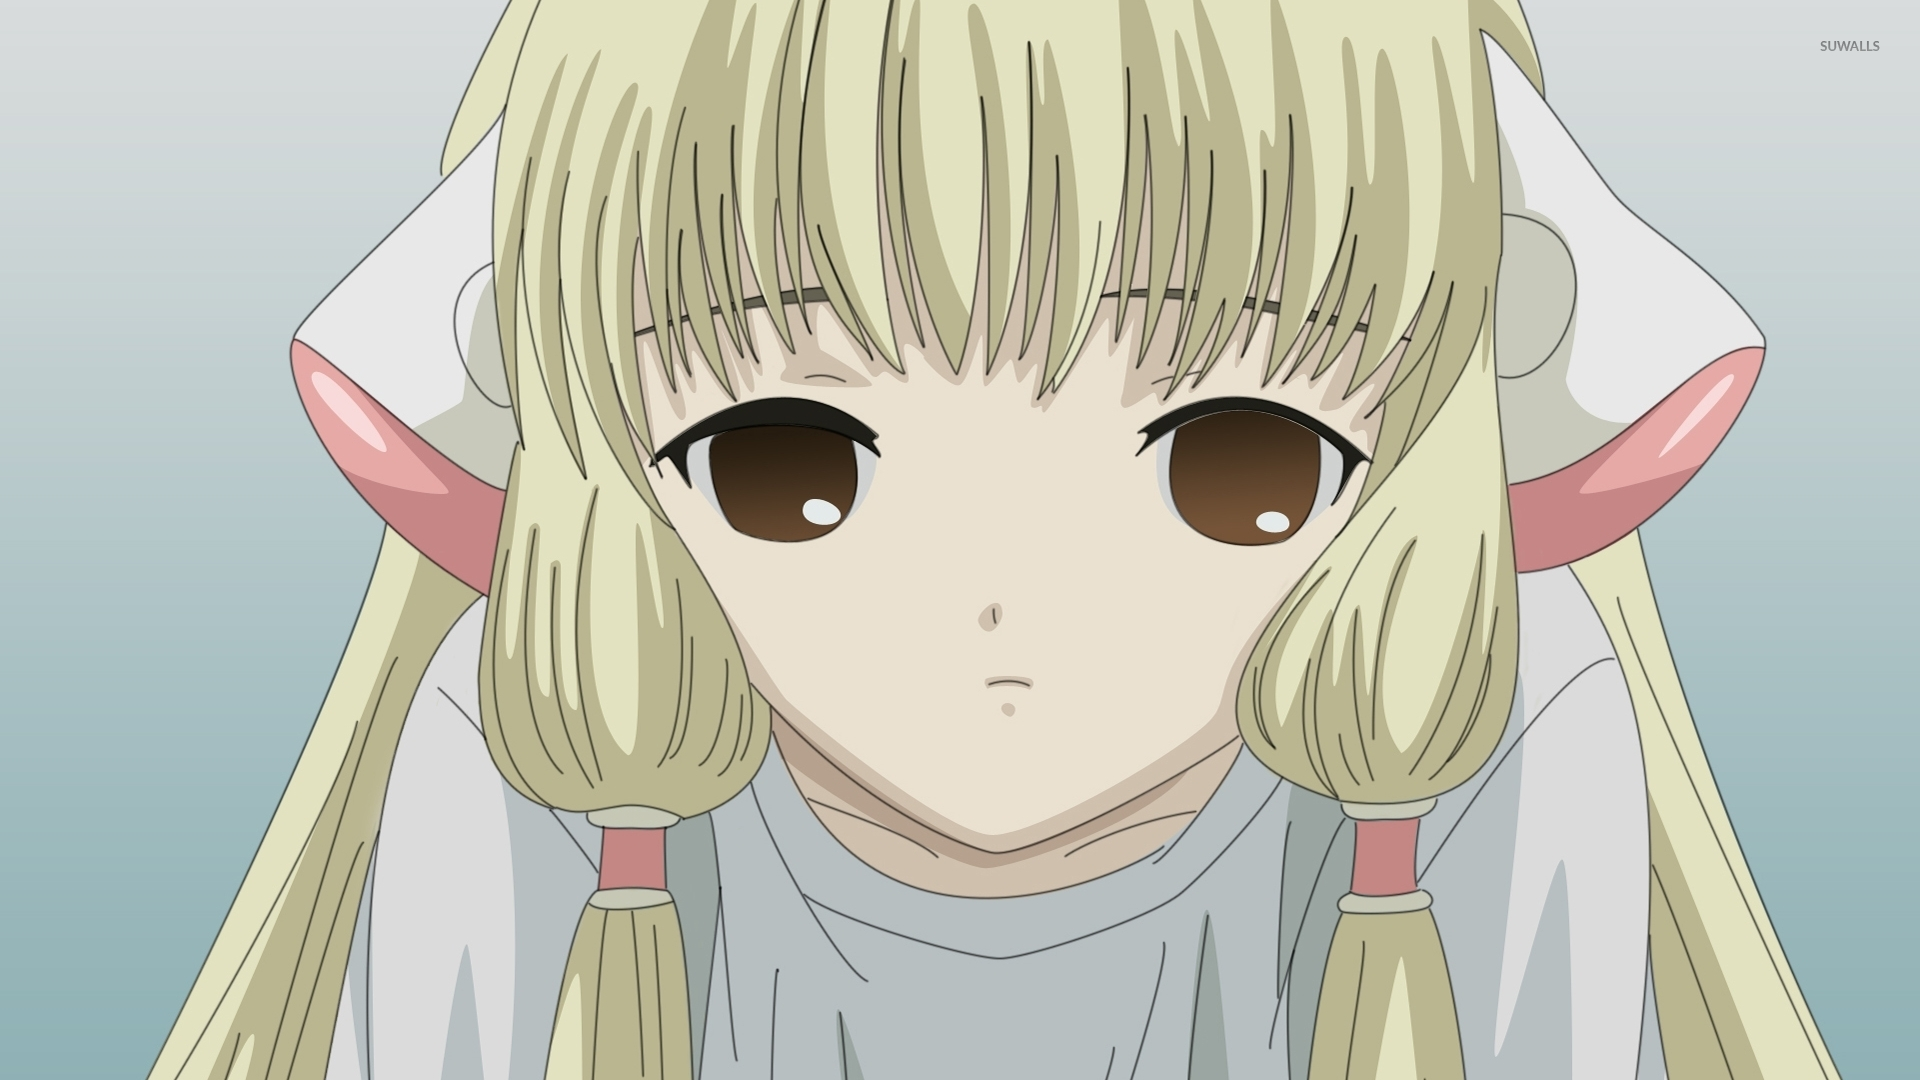 Chii Chobits 2 Wallpaper Anime Wallpapers 6180